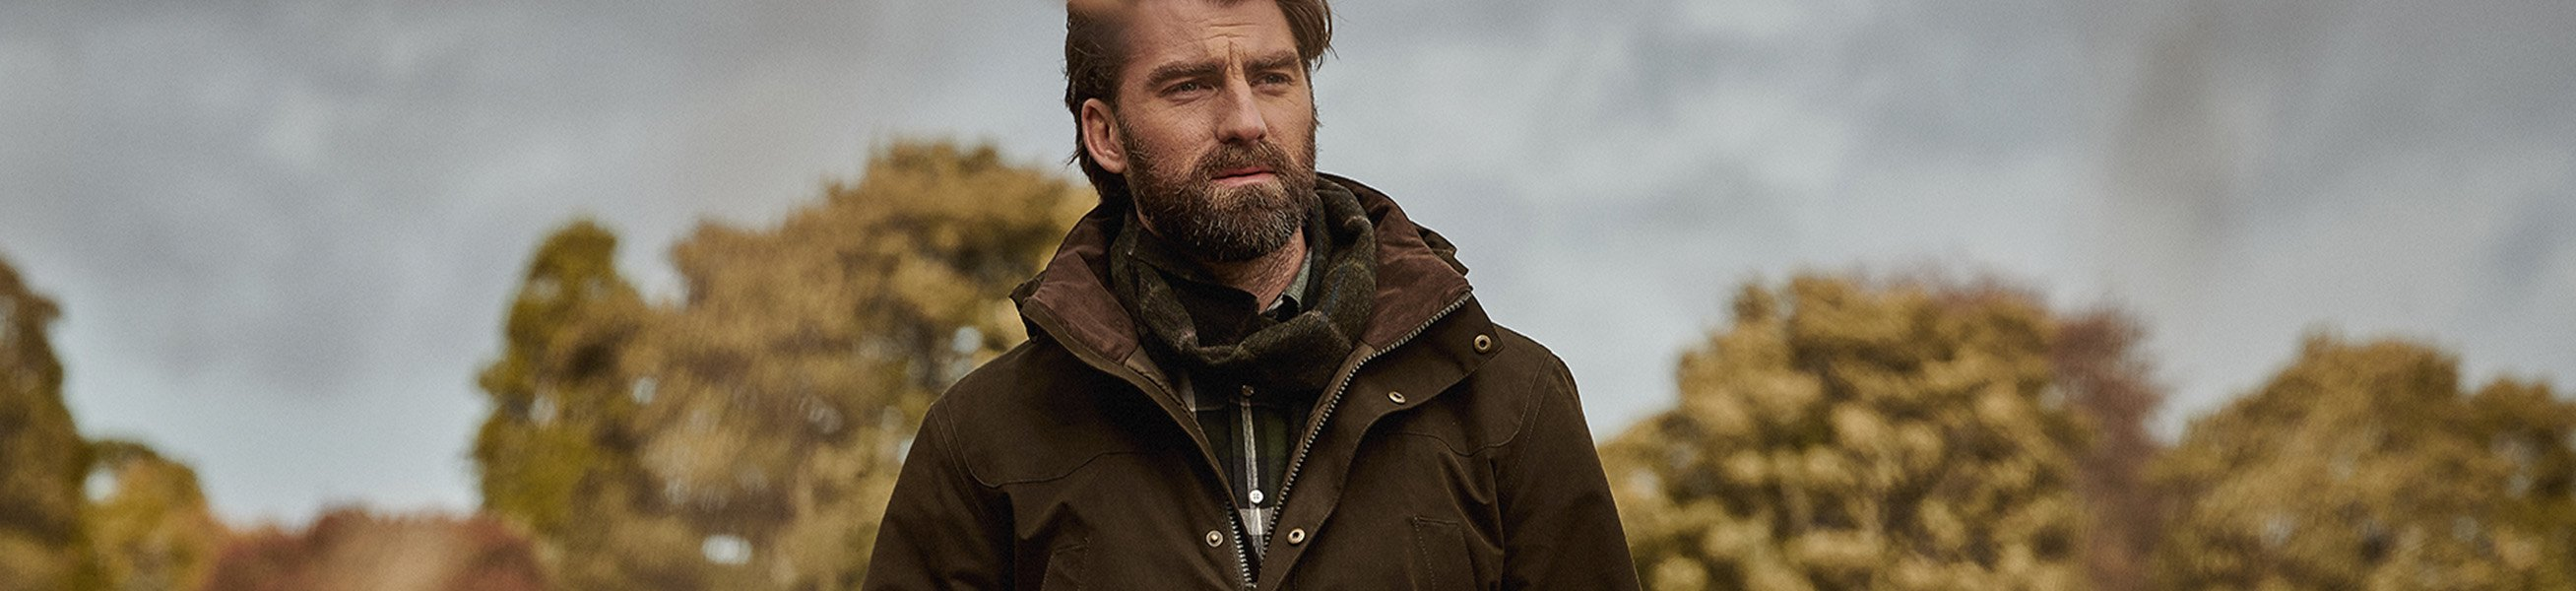 Barbour outdoor jackets